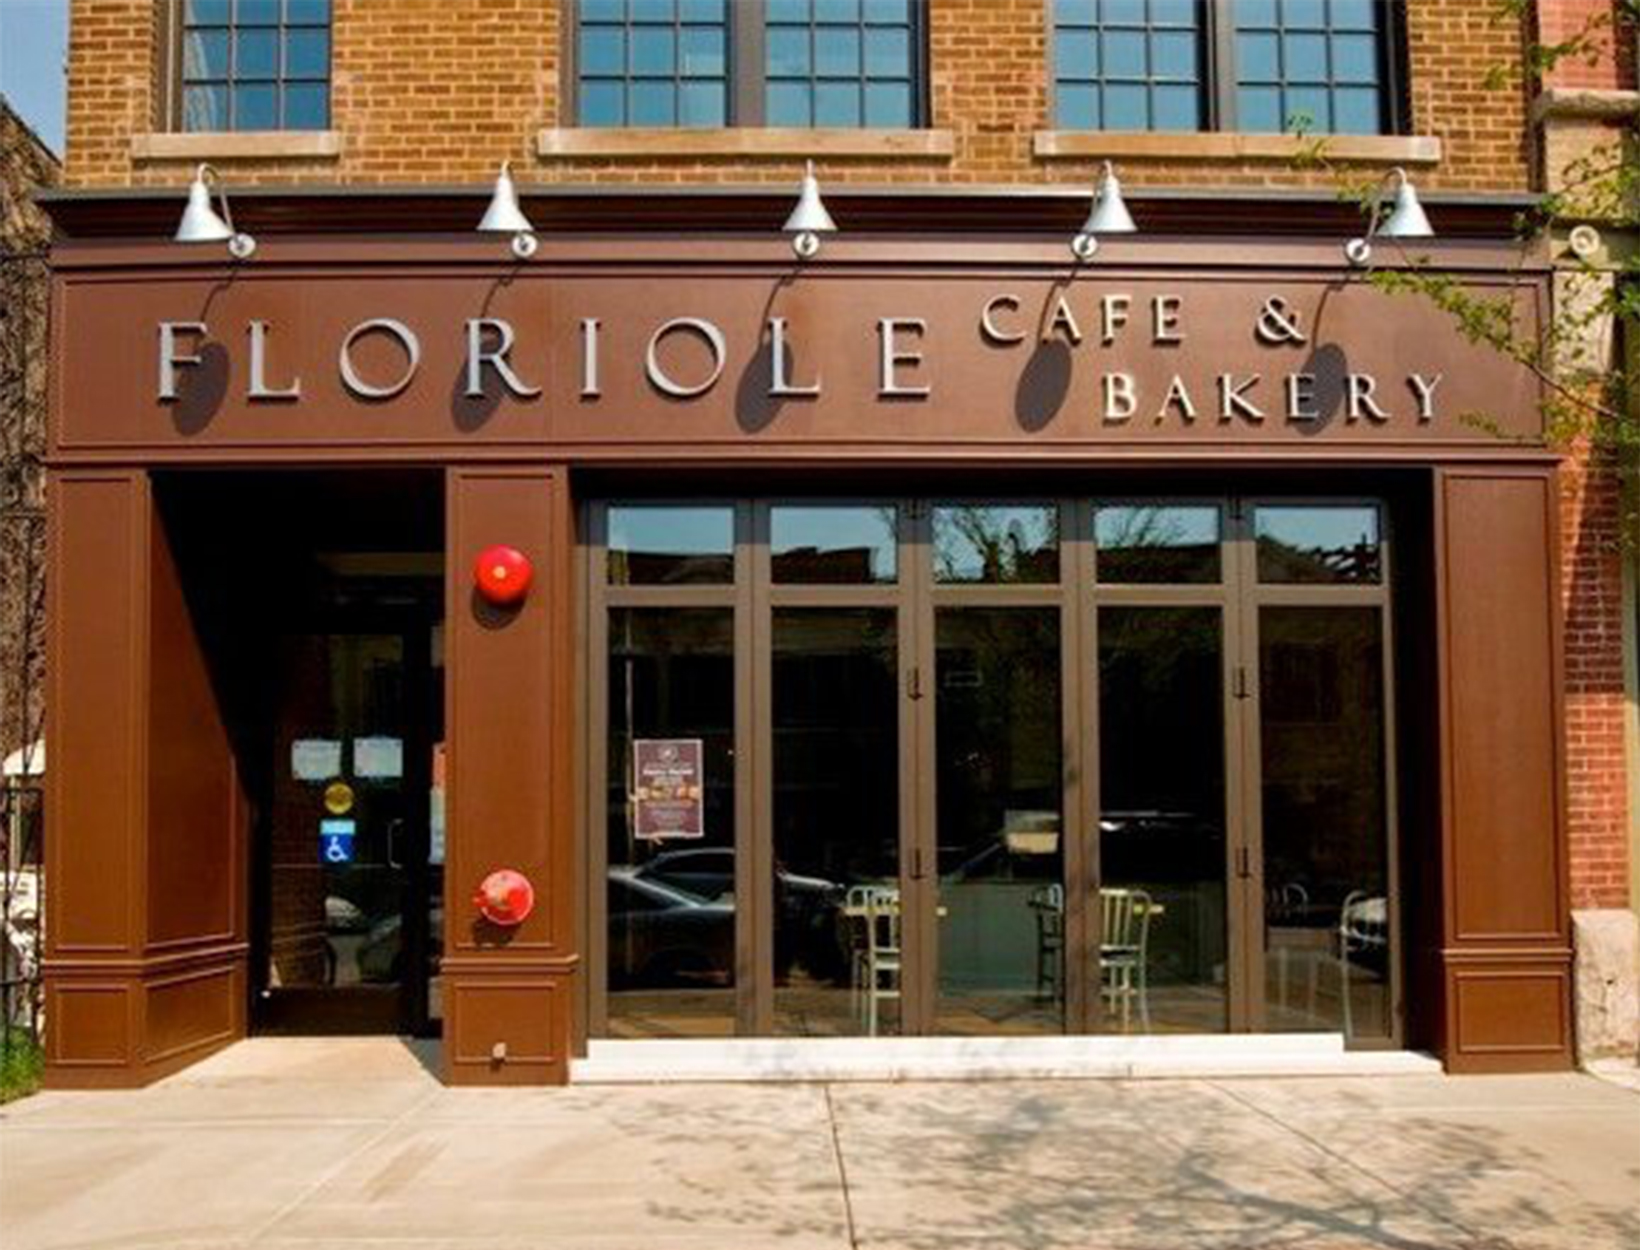 Floriole Cafe & Bakery